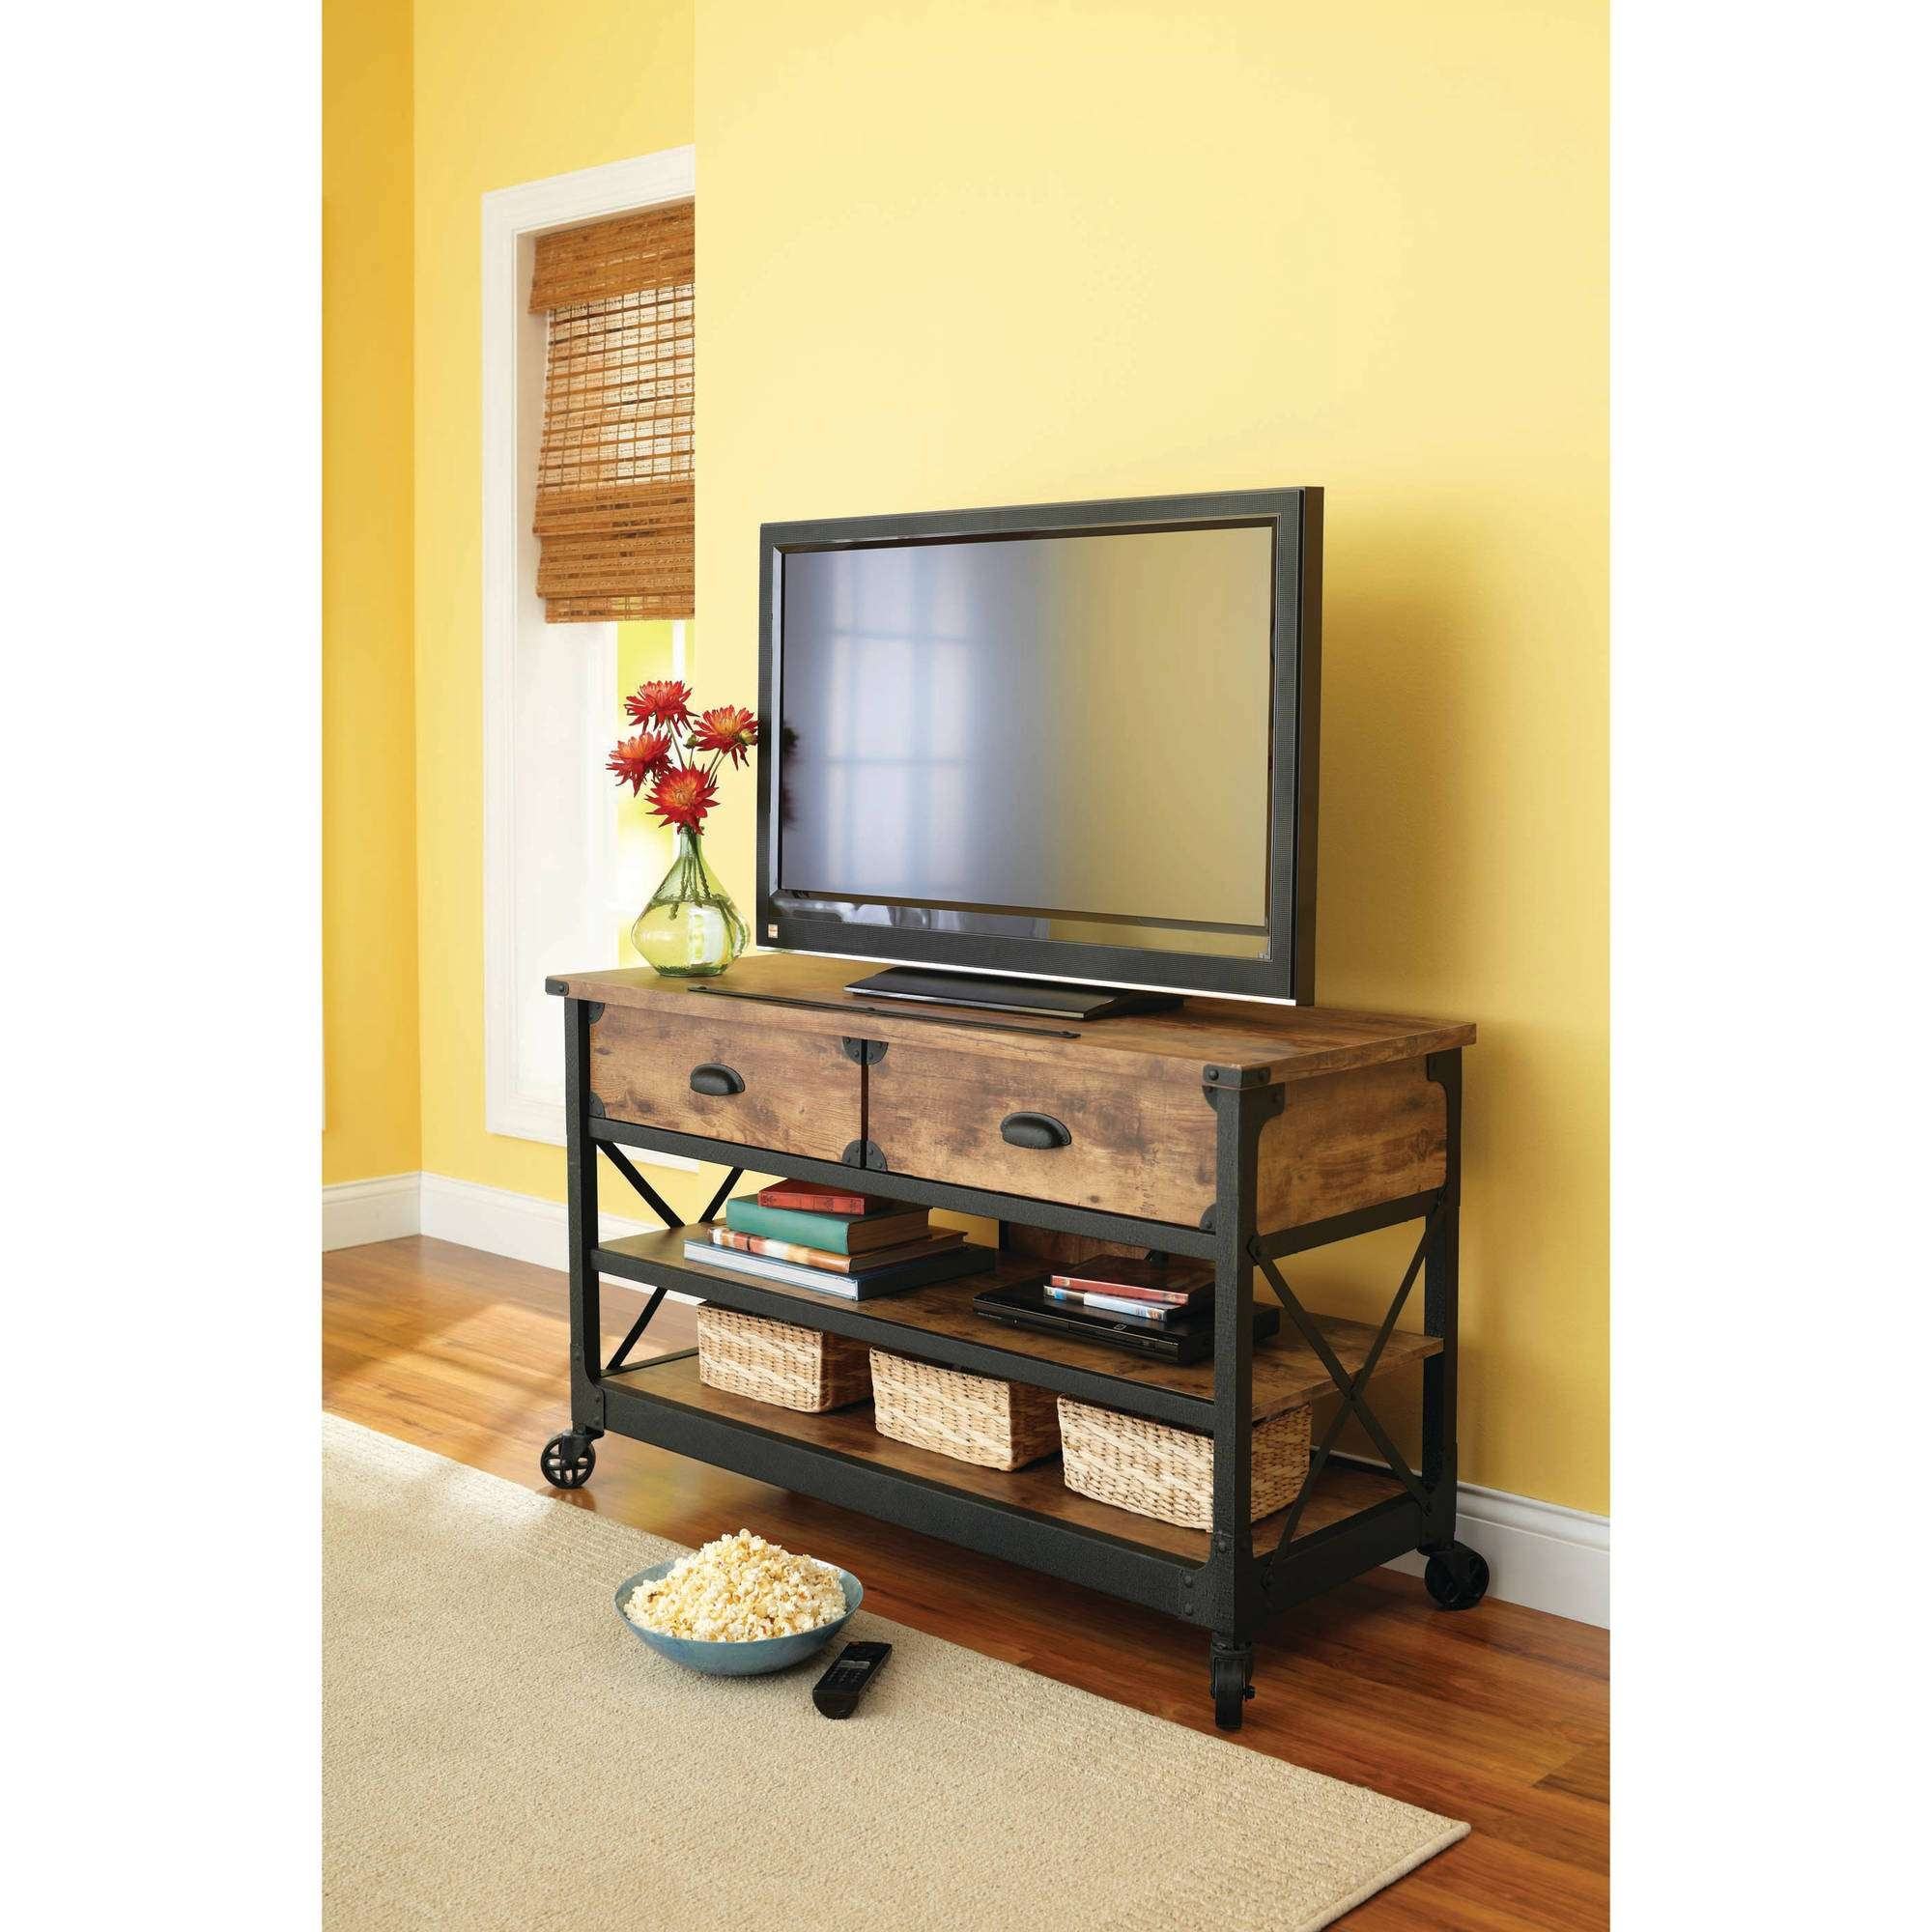 Better Homes And Gardens Rustic Country Living Room Set – Walmart Within Rustic Looking Tv Stands (View 3 of 15)